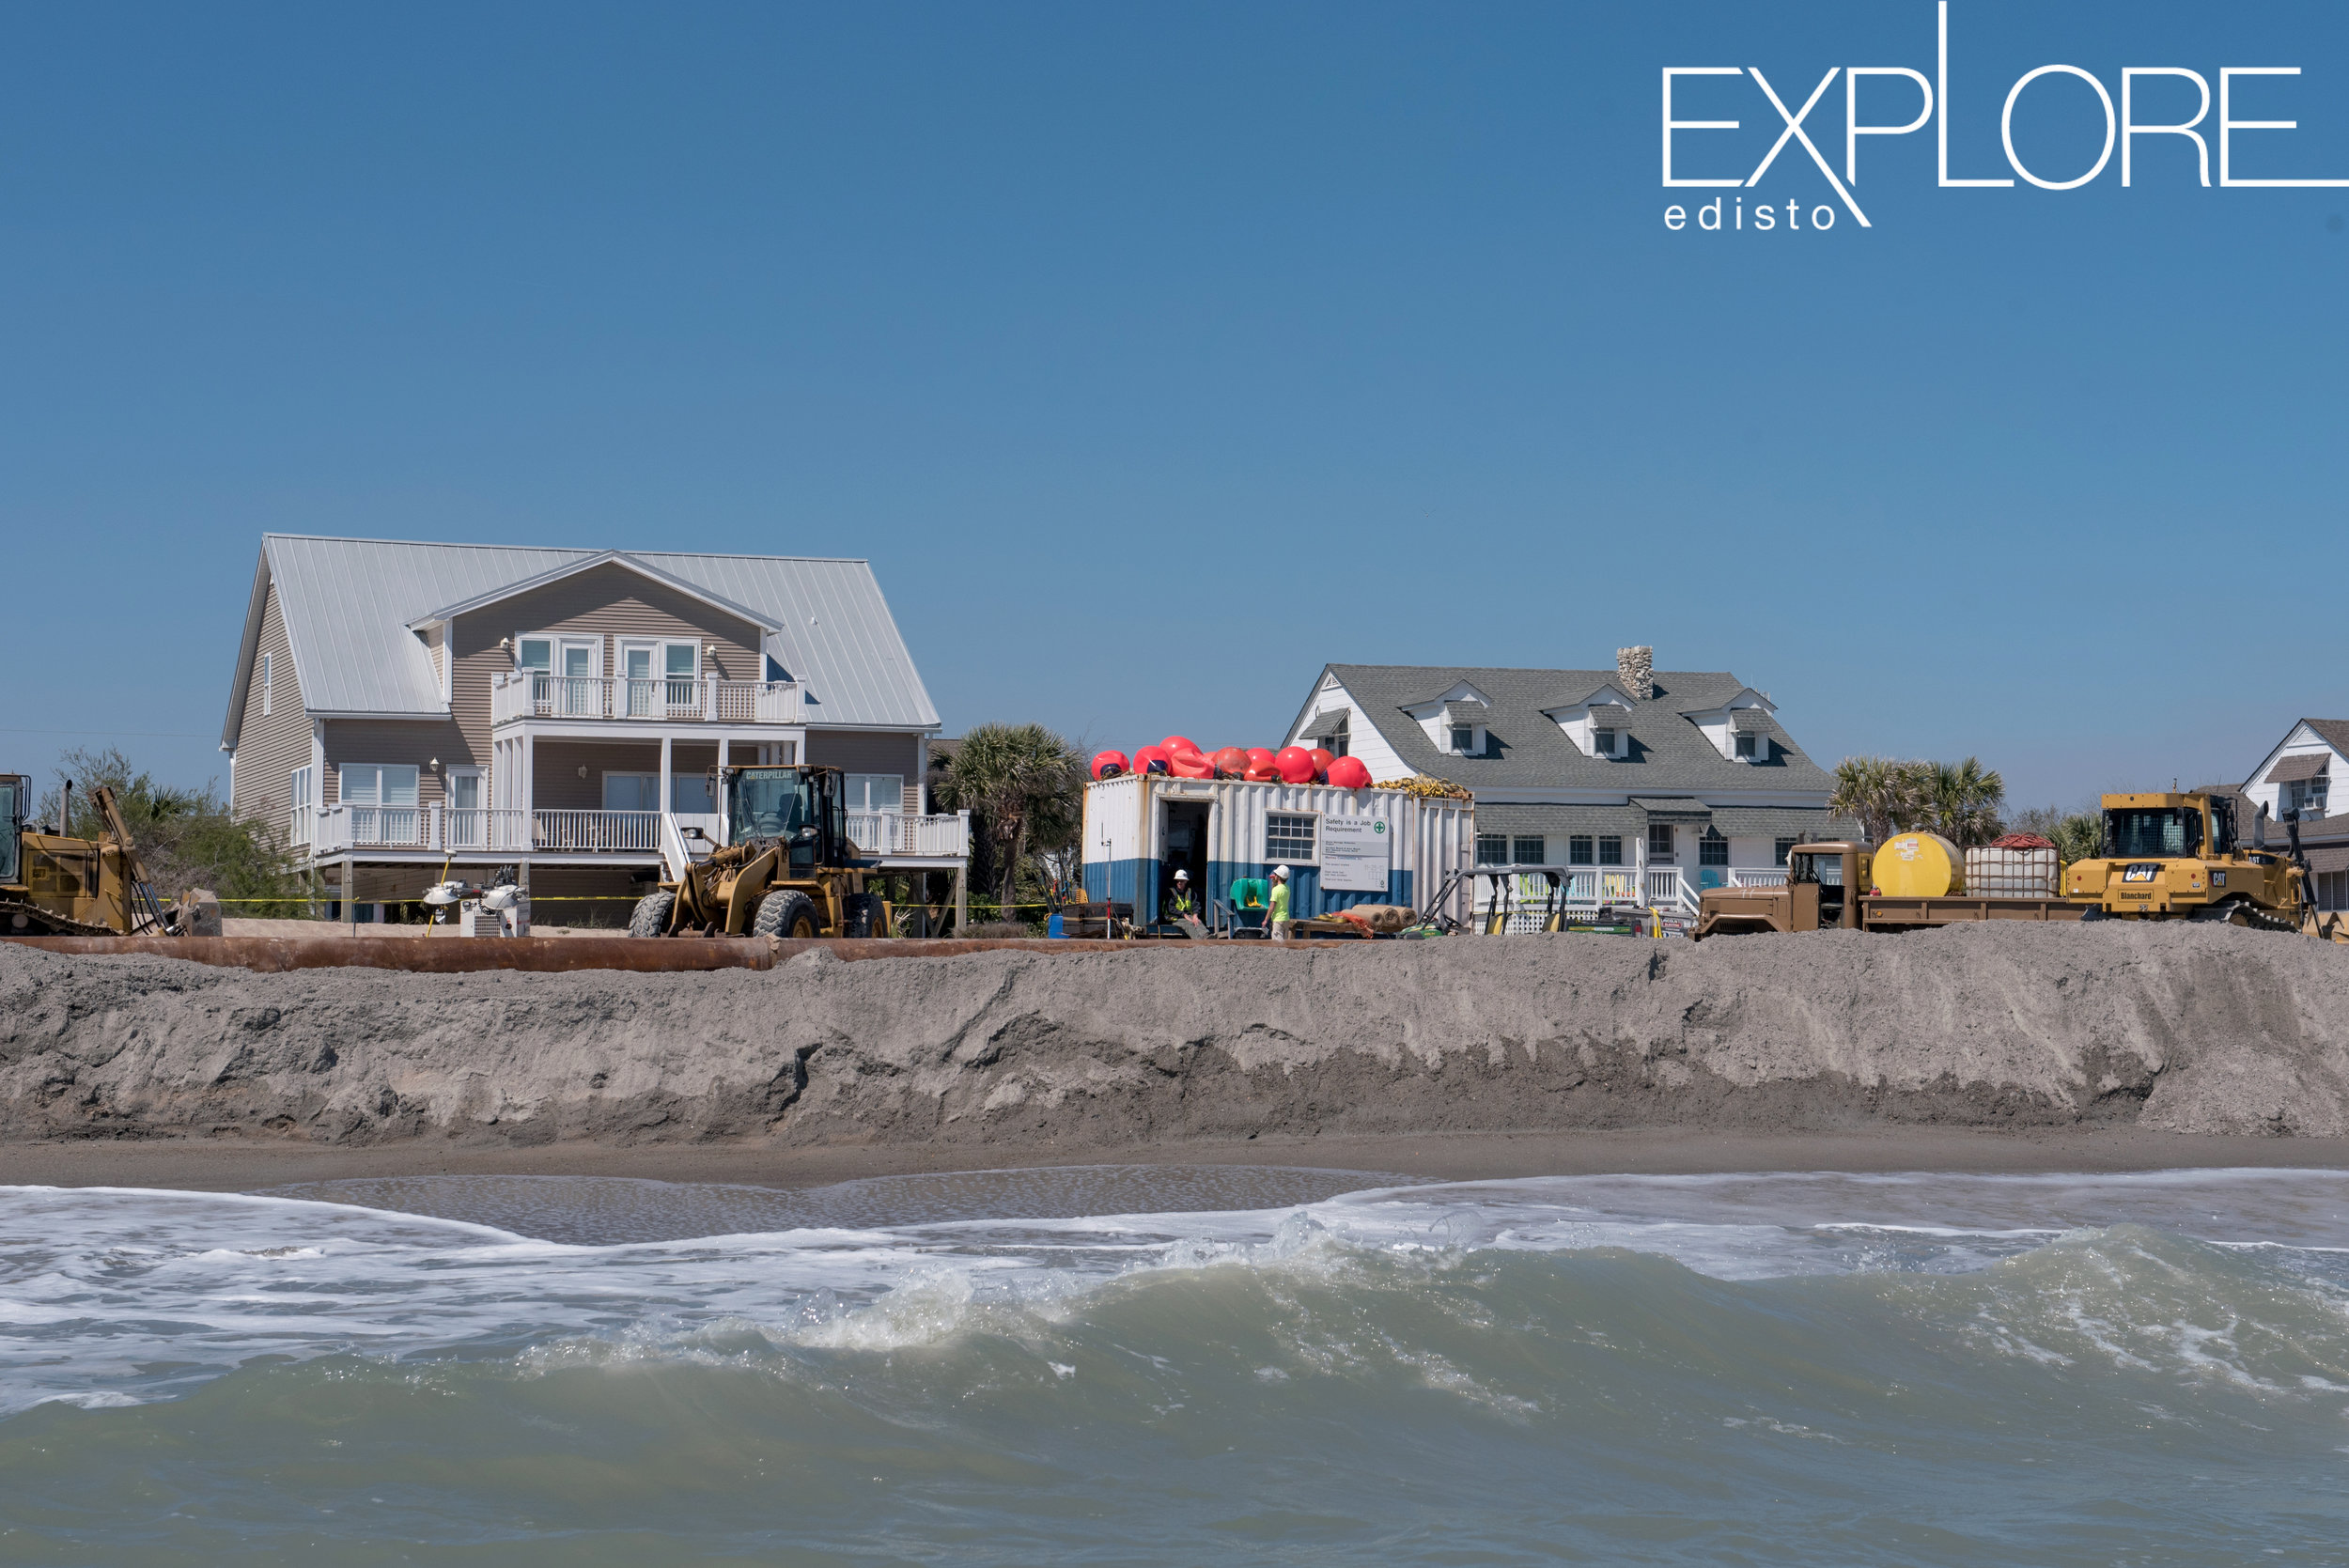 View of beach renourishment from the ocean. Container and tractors on beach with houses in background.